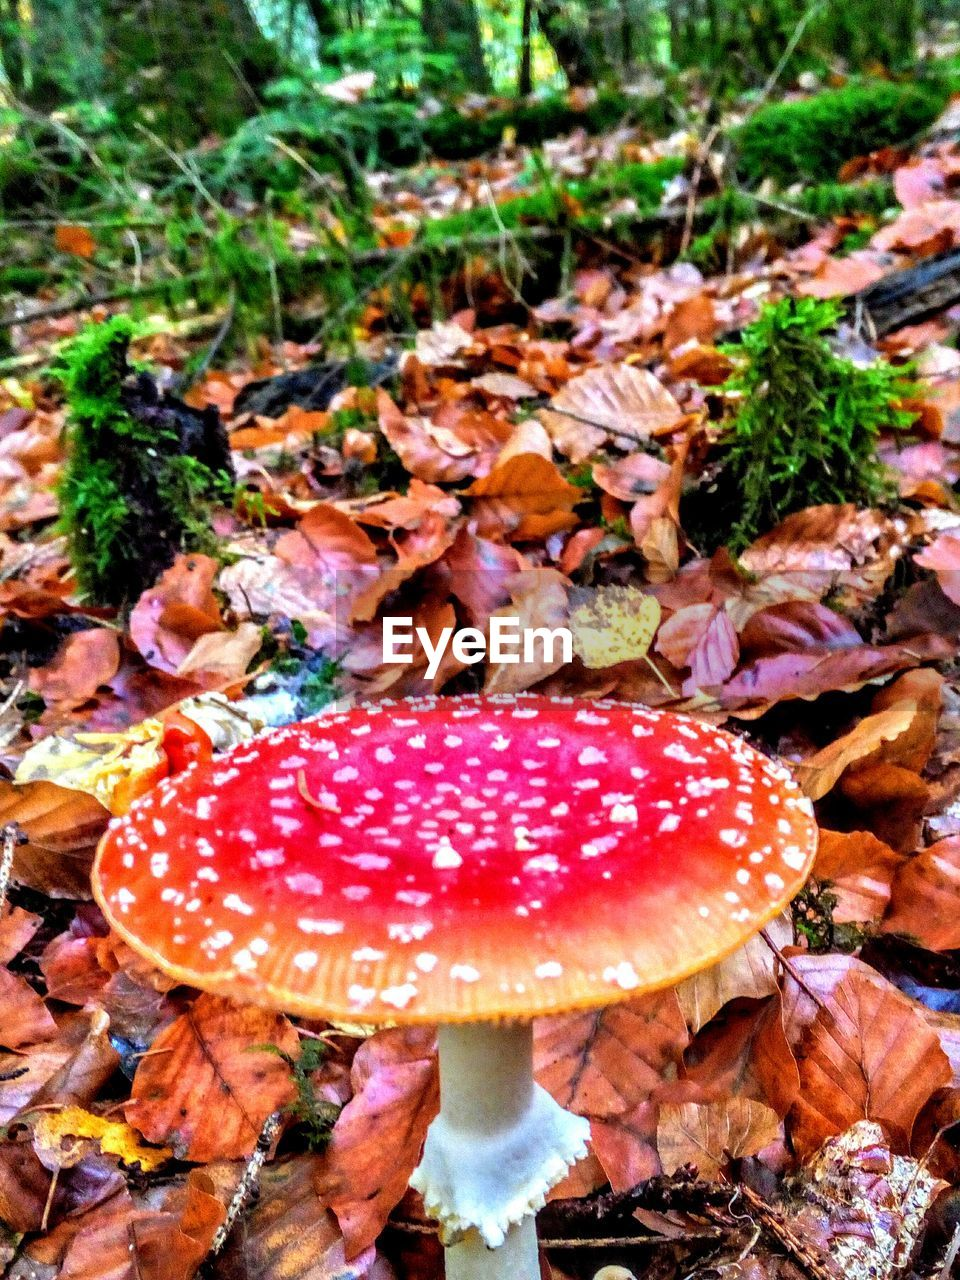 mushroom, fungus, food, vegetable, growth, leaf, fly agaric mushroom, plant part, plant, land, nature, no people, toadstool, edible mushroom, day, close-up, field, beauty in nature, red, forest, outdoors, poisonous